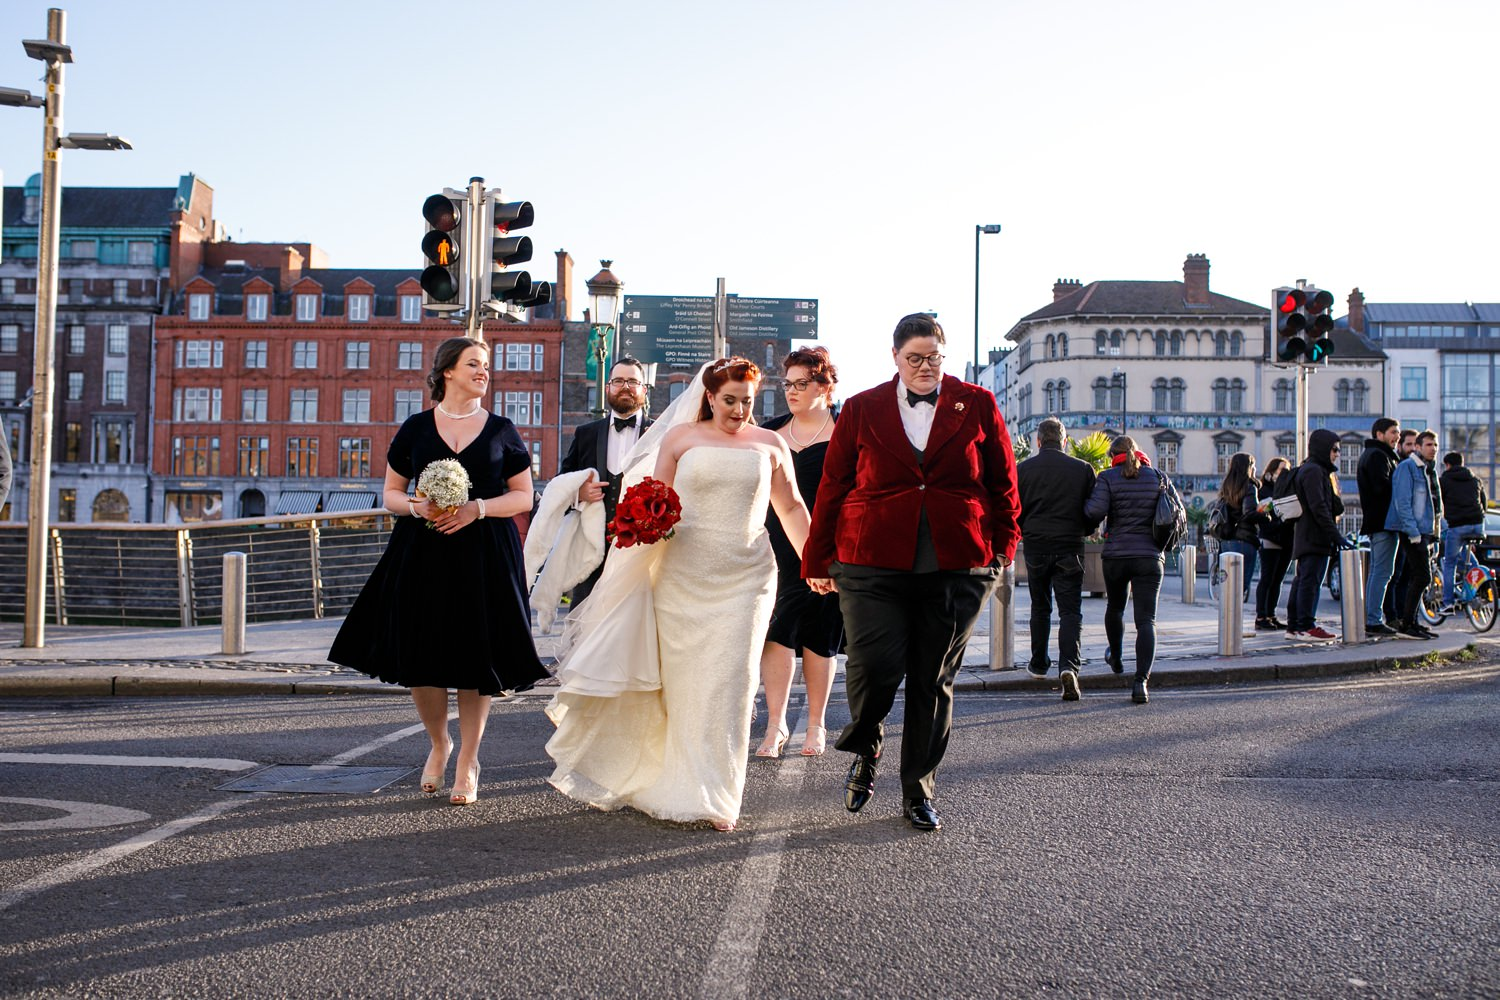 Elisha-Clarke-Photography-Dublin-City-Wedding_00290.jpg